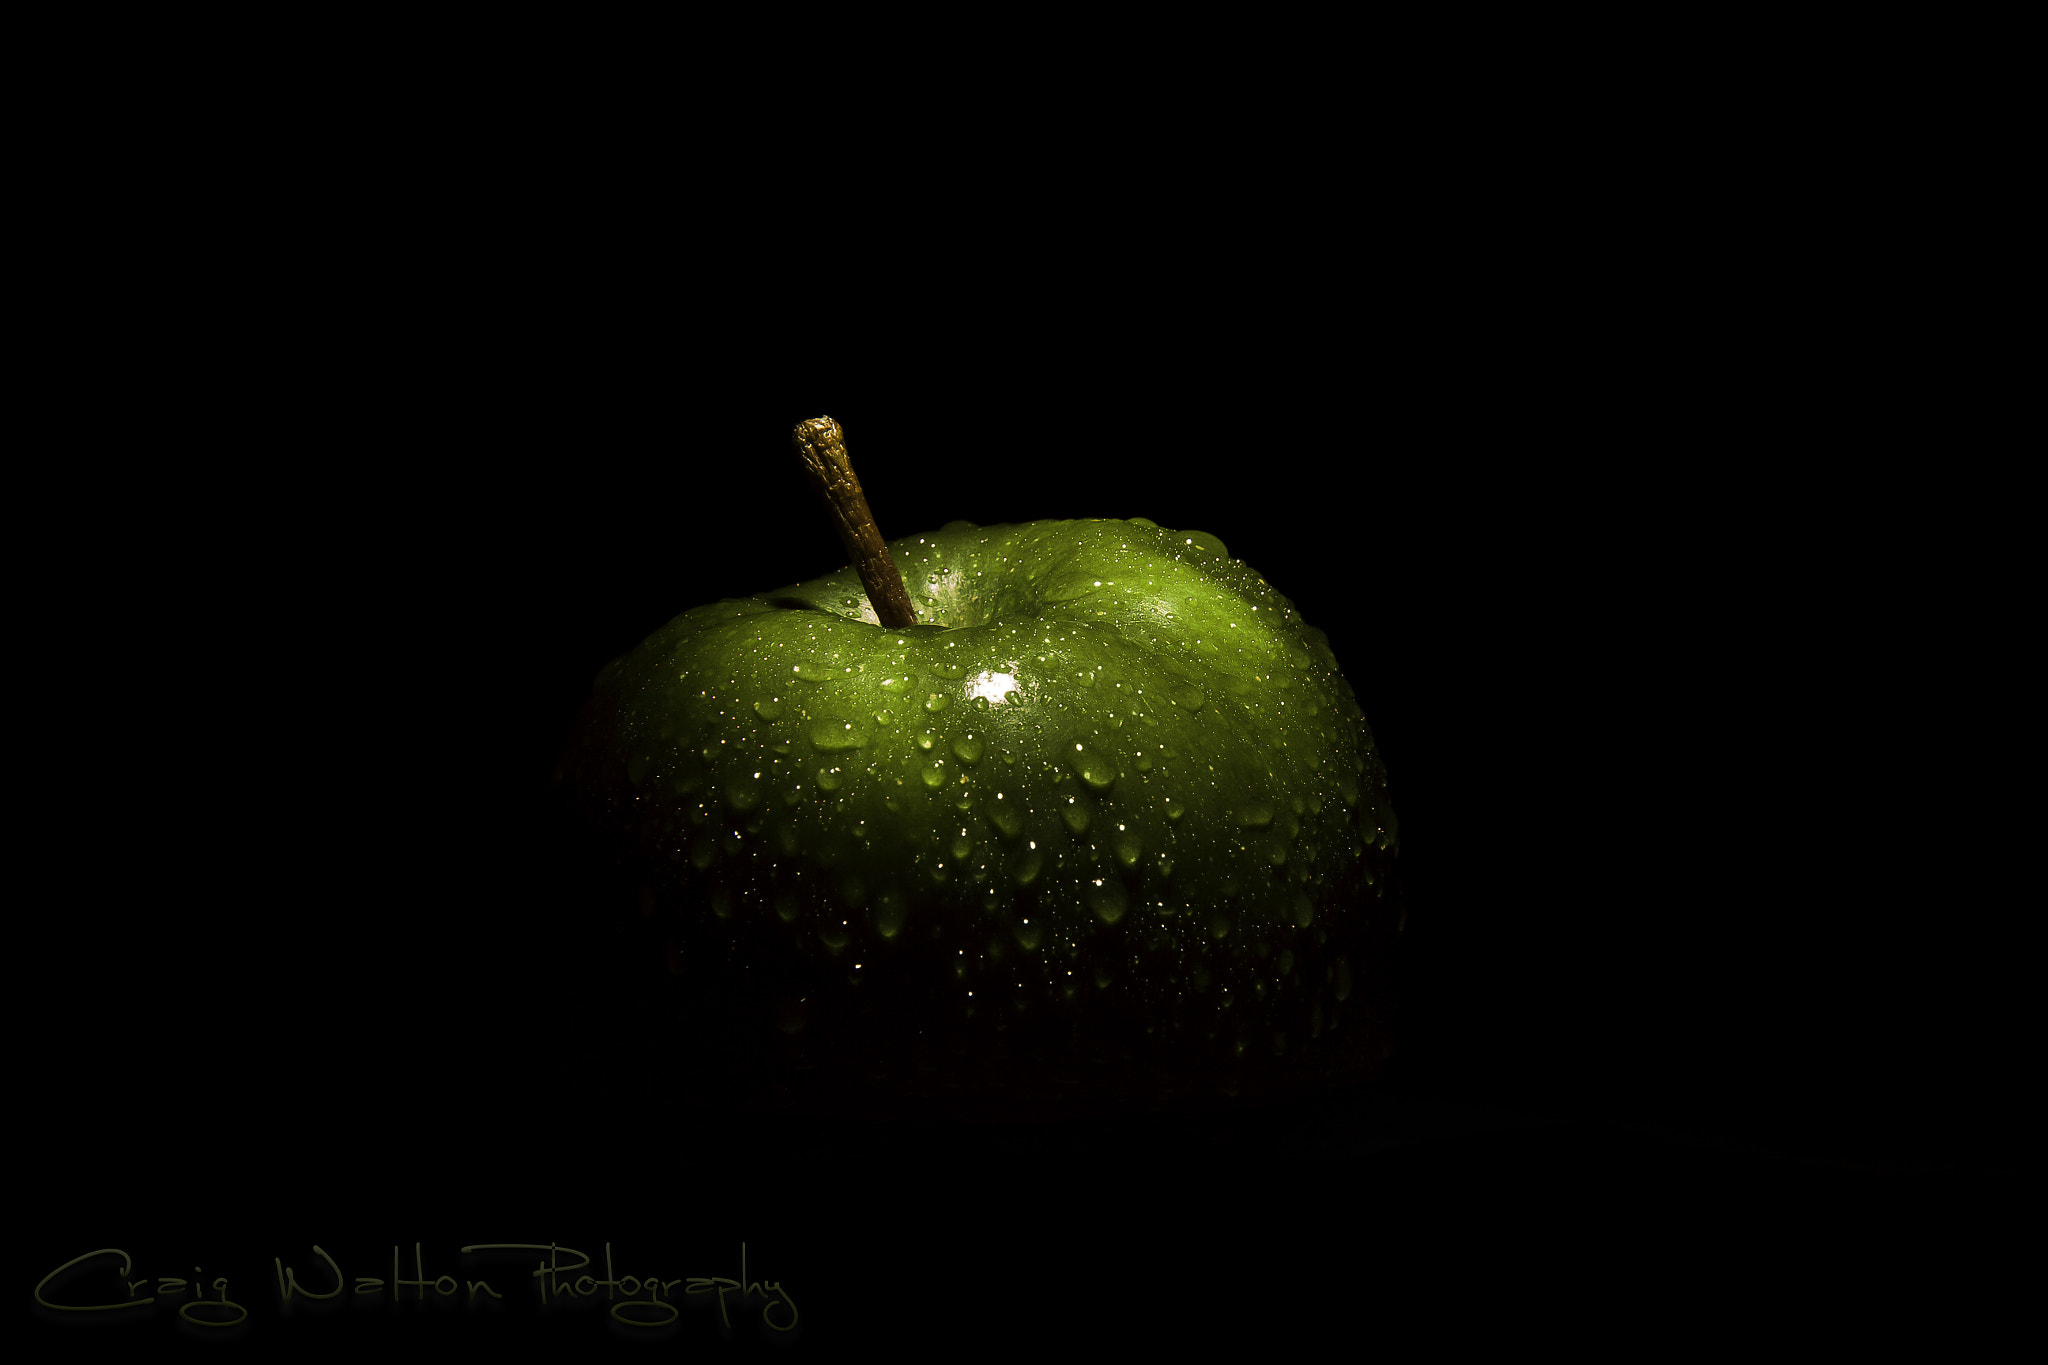 Photograph How about them apples? by Craig Walton on 500px